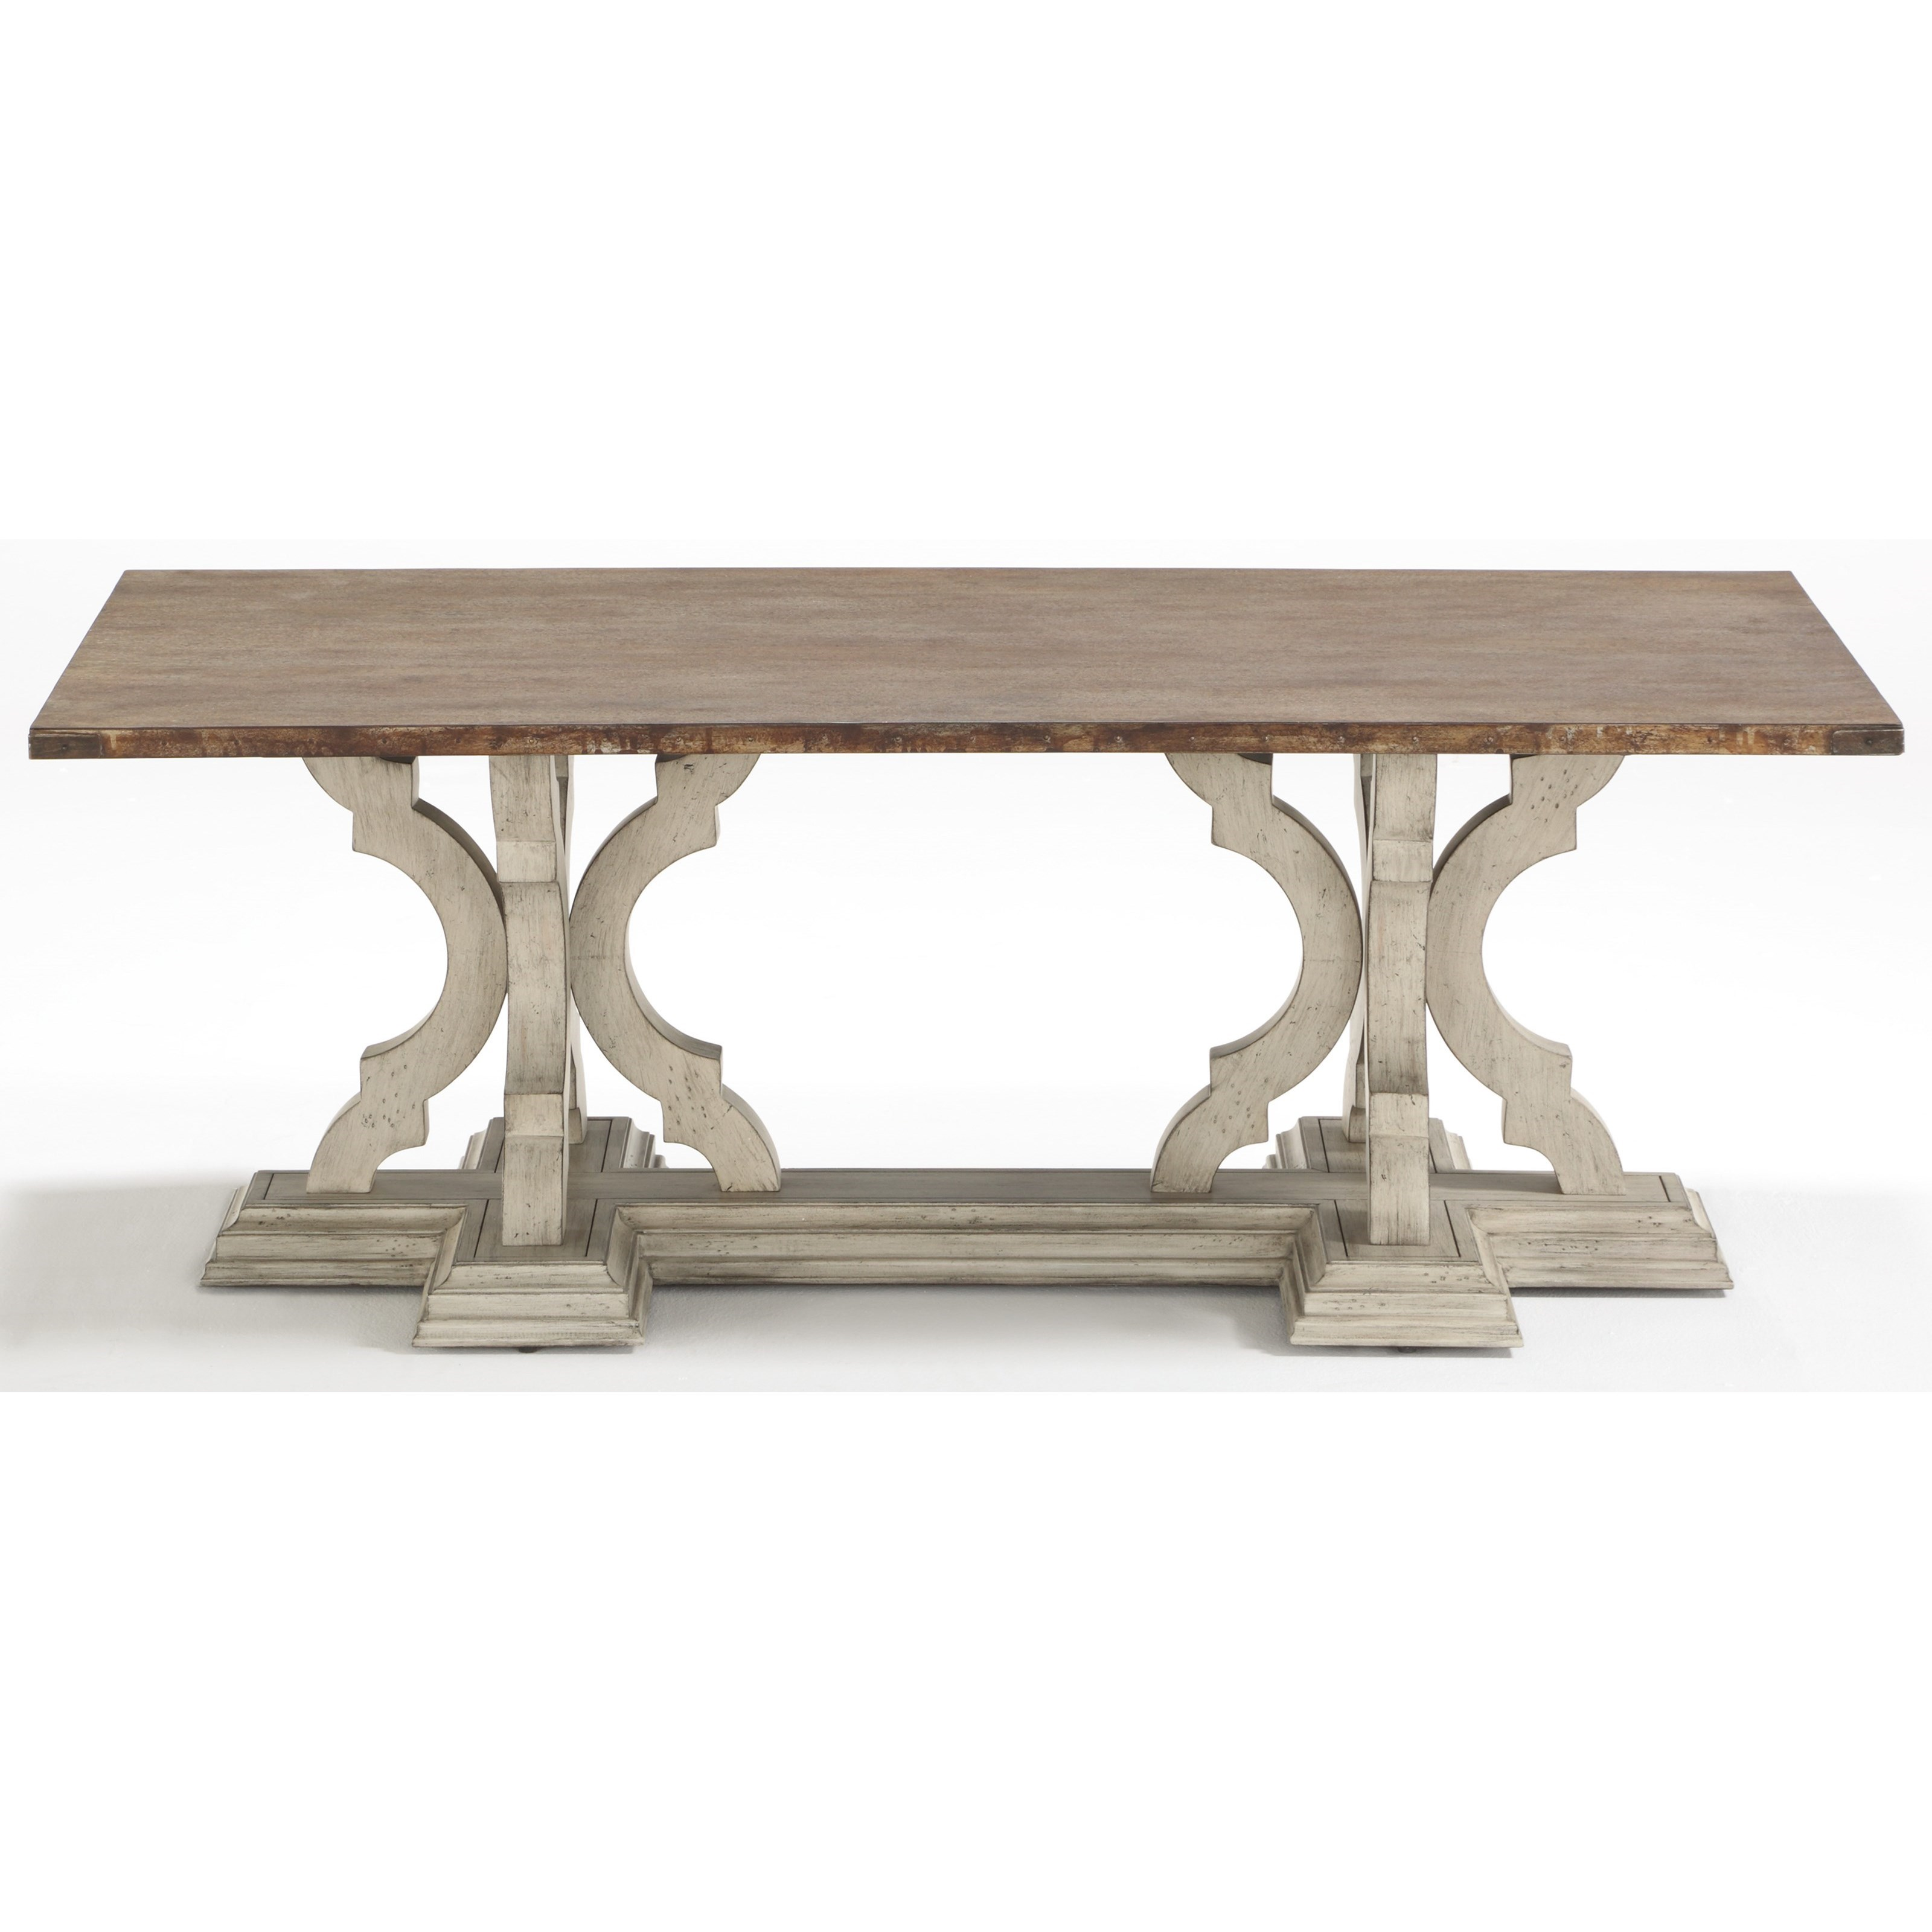 Estate Cocktail Table by Flexsteel Wynwood Collection at Northeast Factory Direct